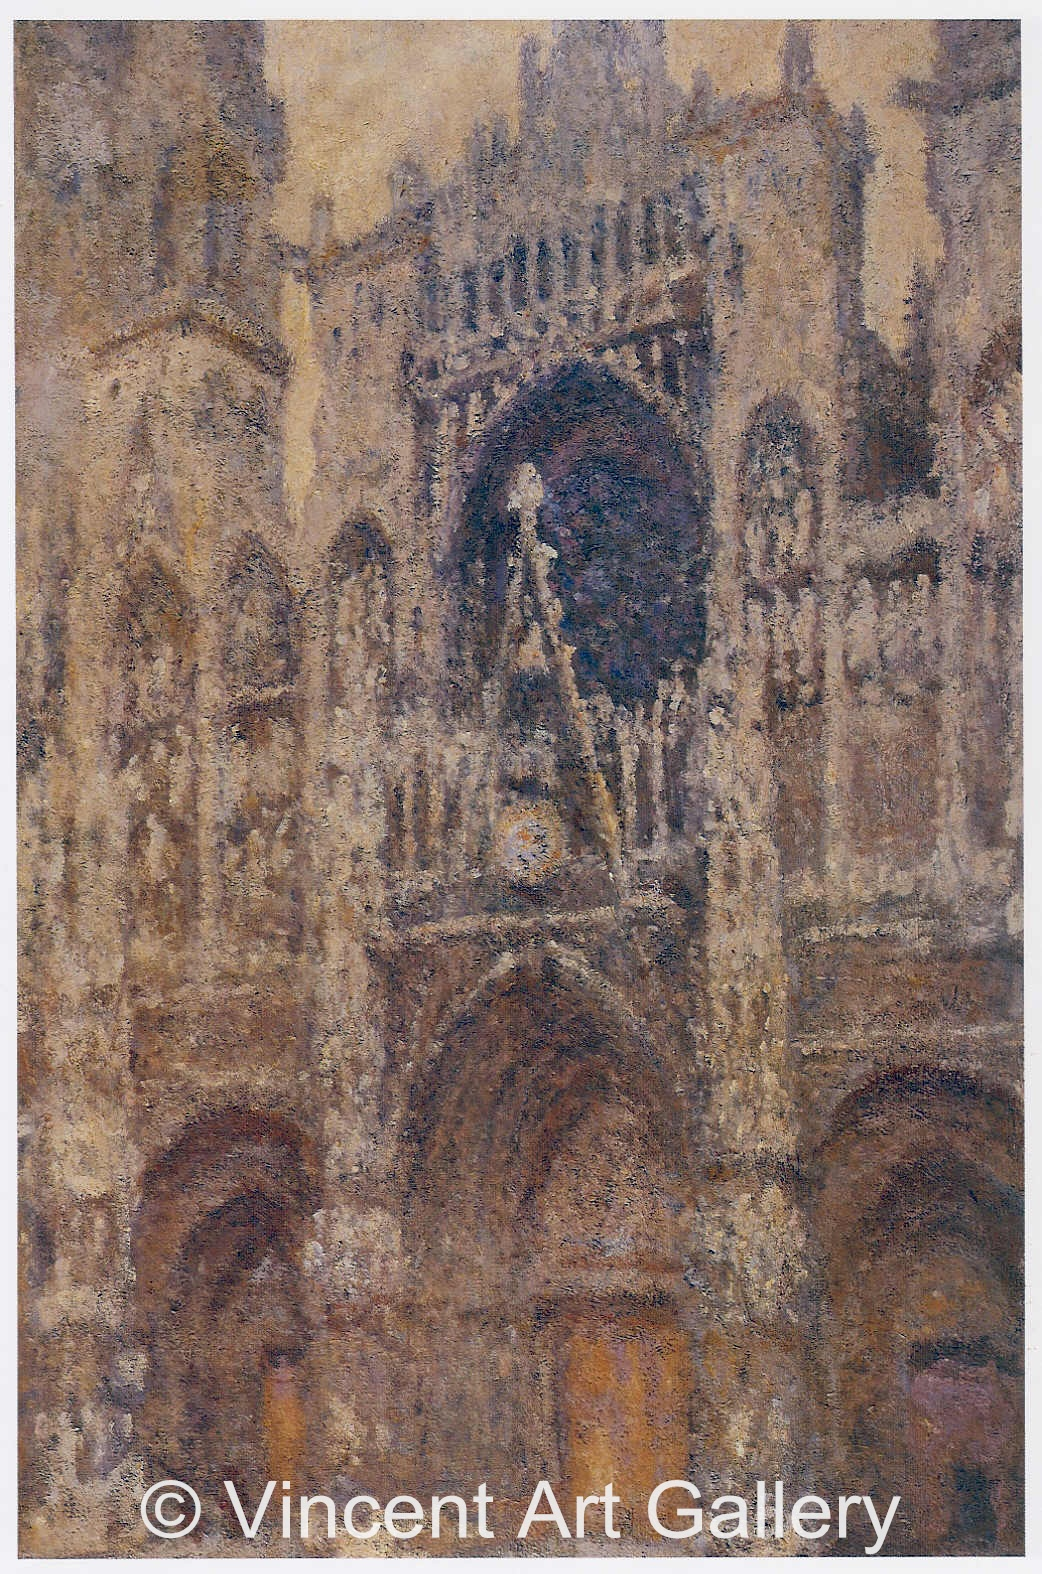 A175 (b) MONET, Cathedral, full Sunlight